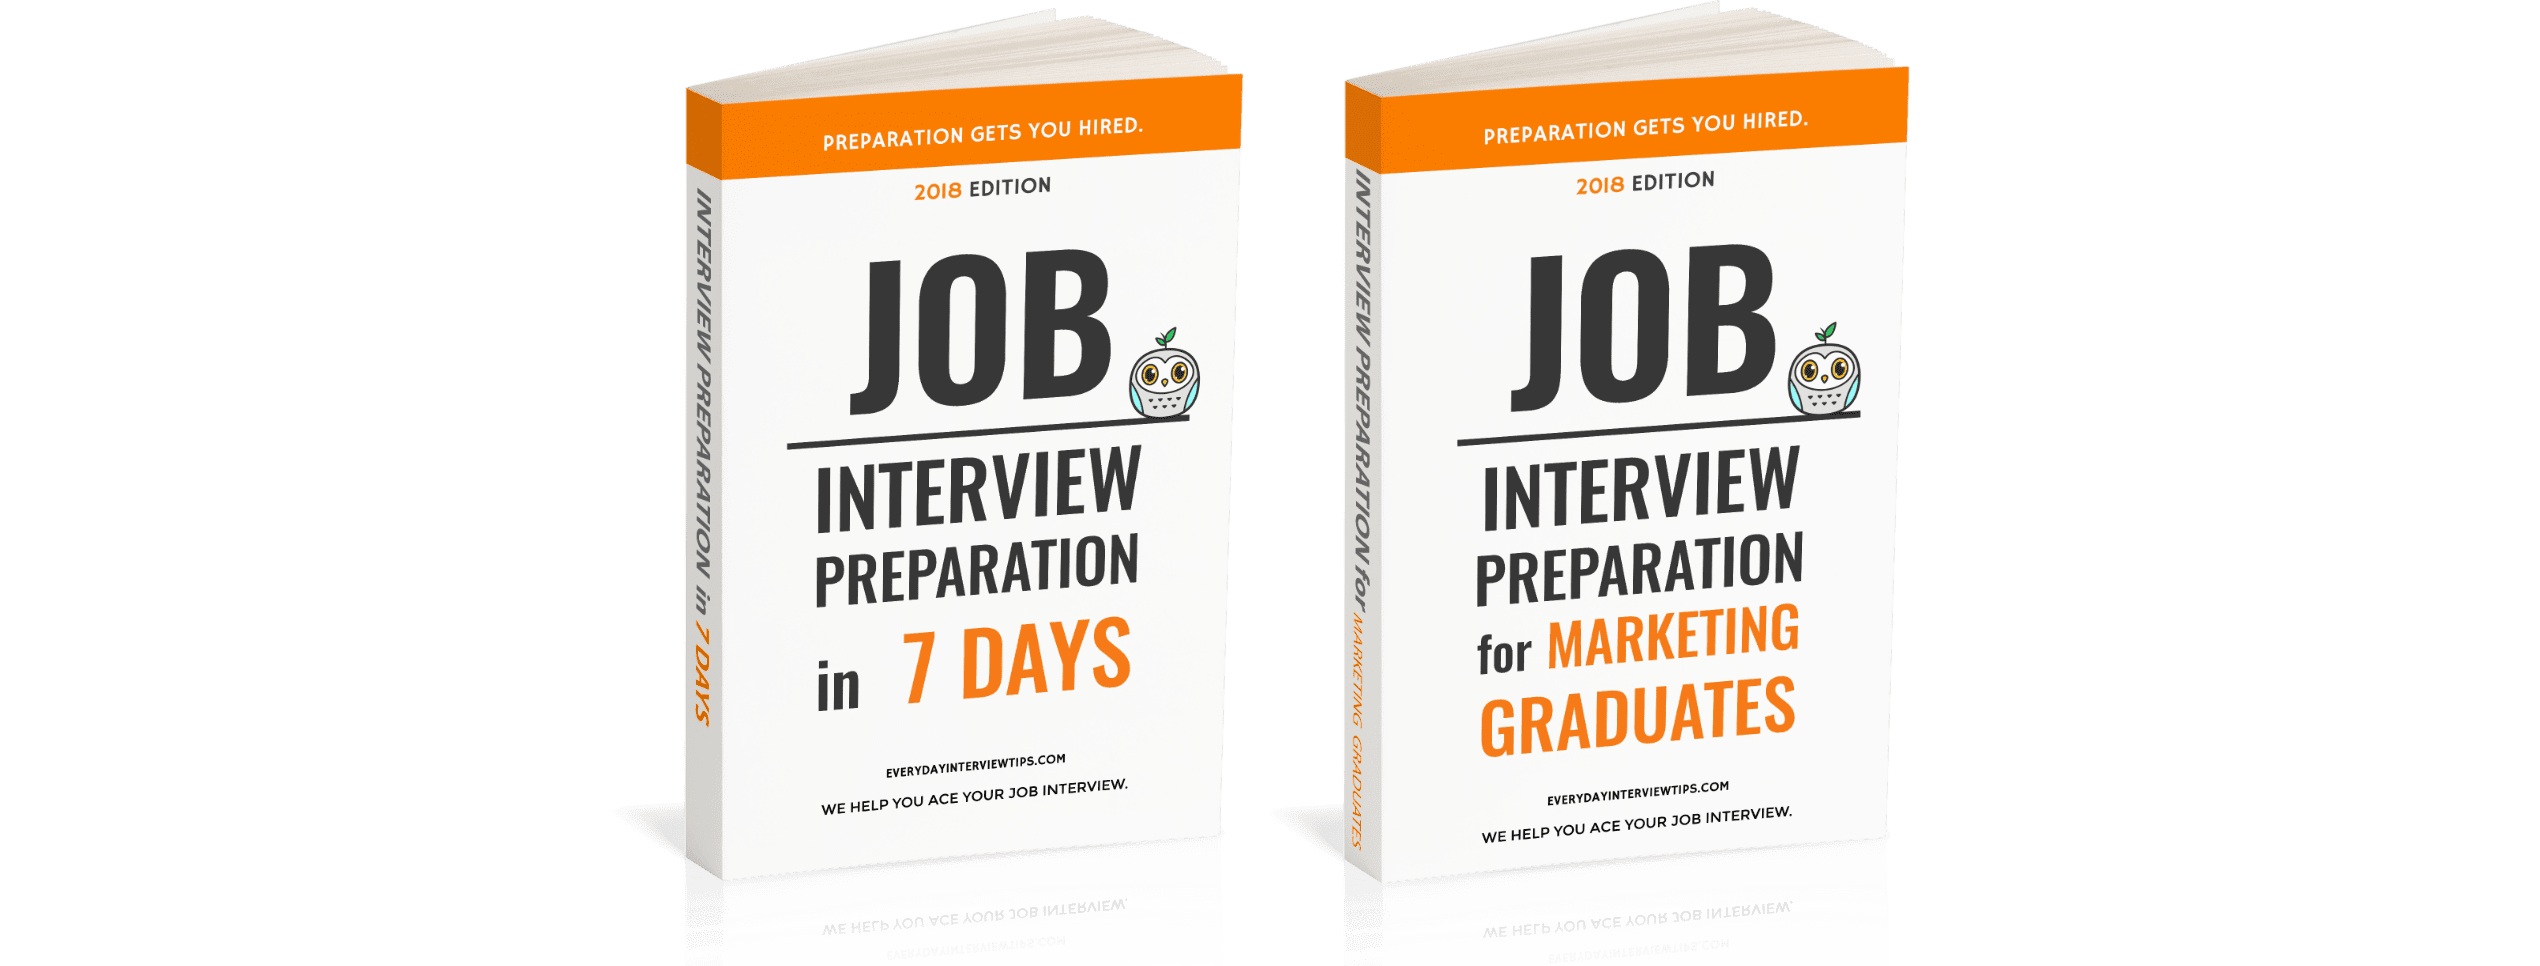 Everyday Interview Tips 2018 eBook Guides